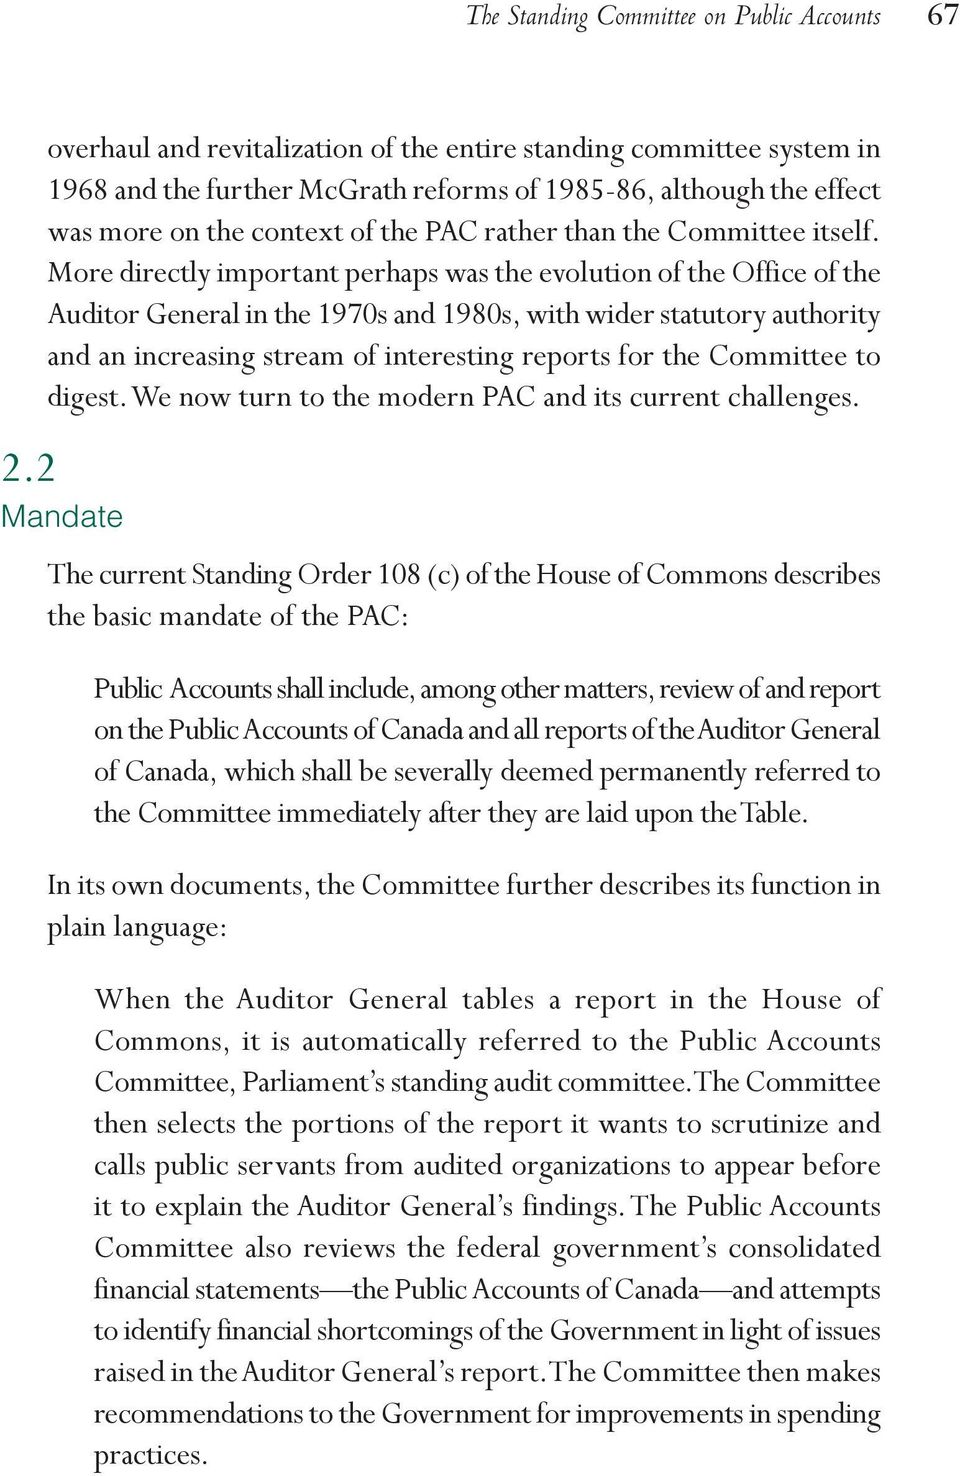 More directly important perhaps was the evolution of the Office of the Auditor General in the 1970s and 1980s, with wider statutory authority and an increasing stream of interesting reports for the